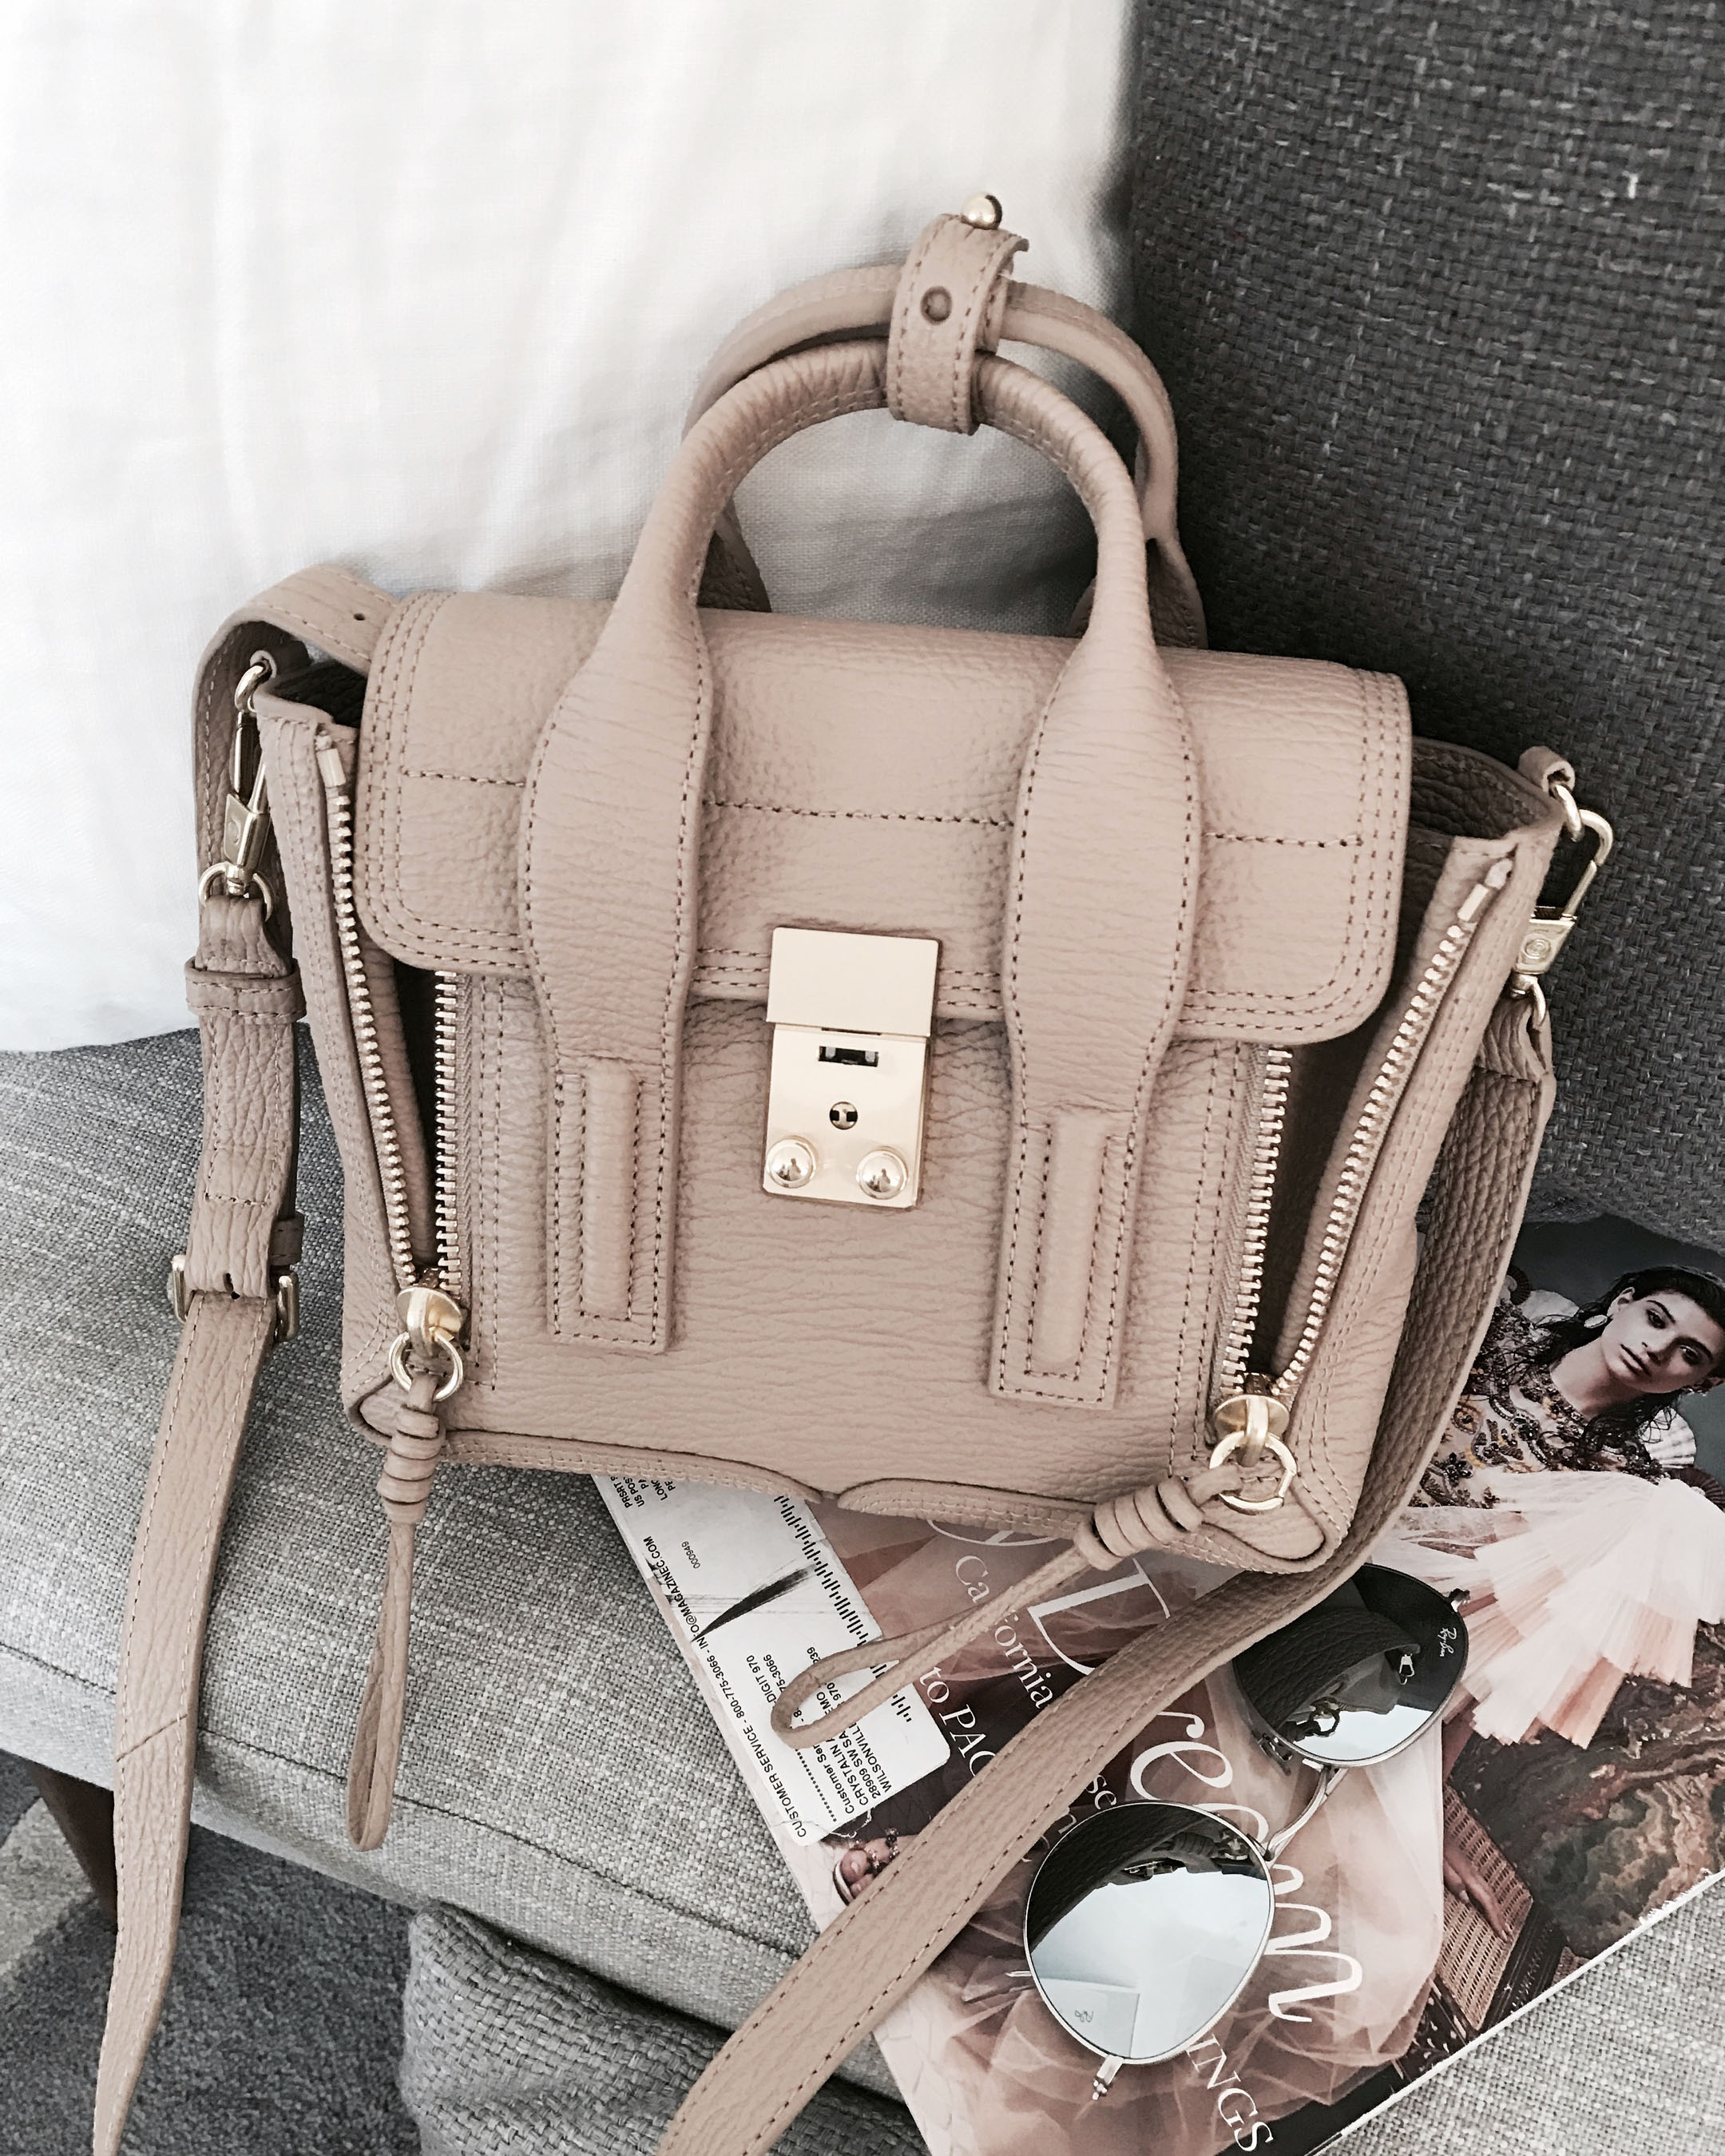 3.1 Phillip Lim mini satchel in cashew